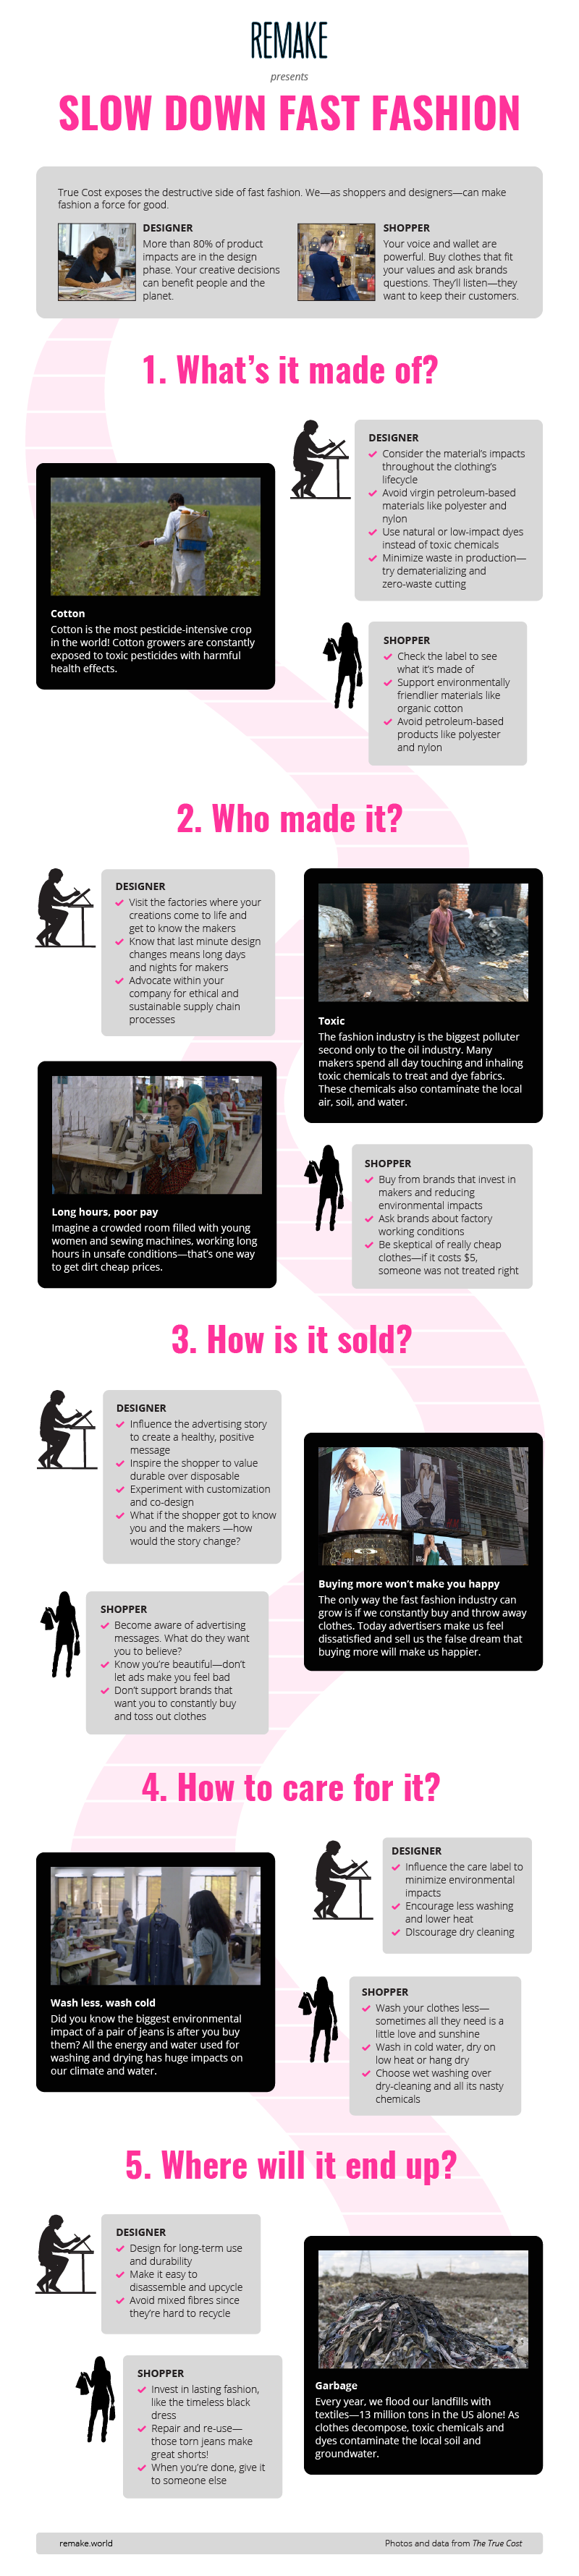 Remake Infographic - Slow Down Fast Fashion